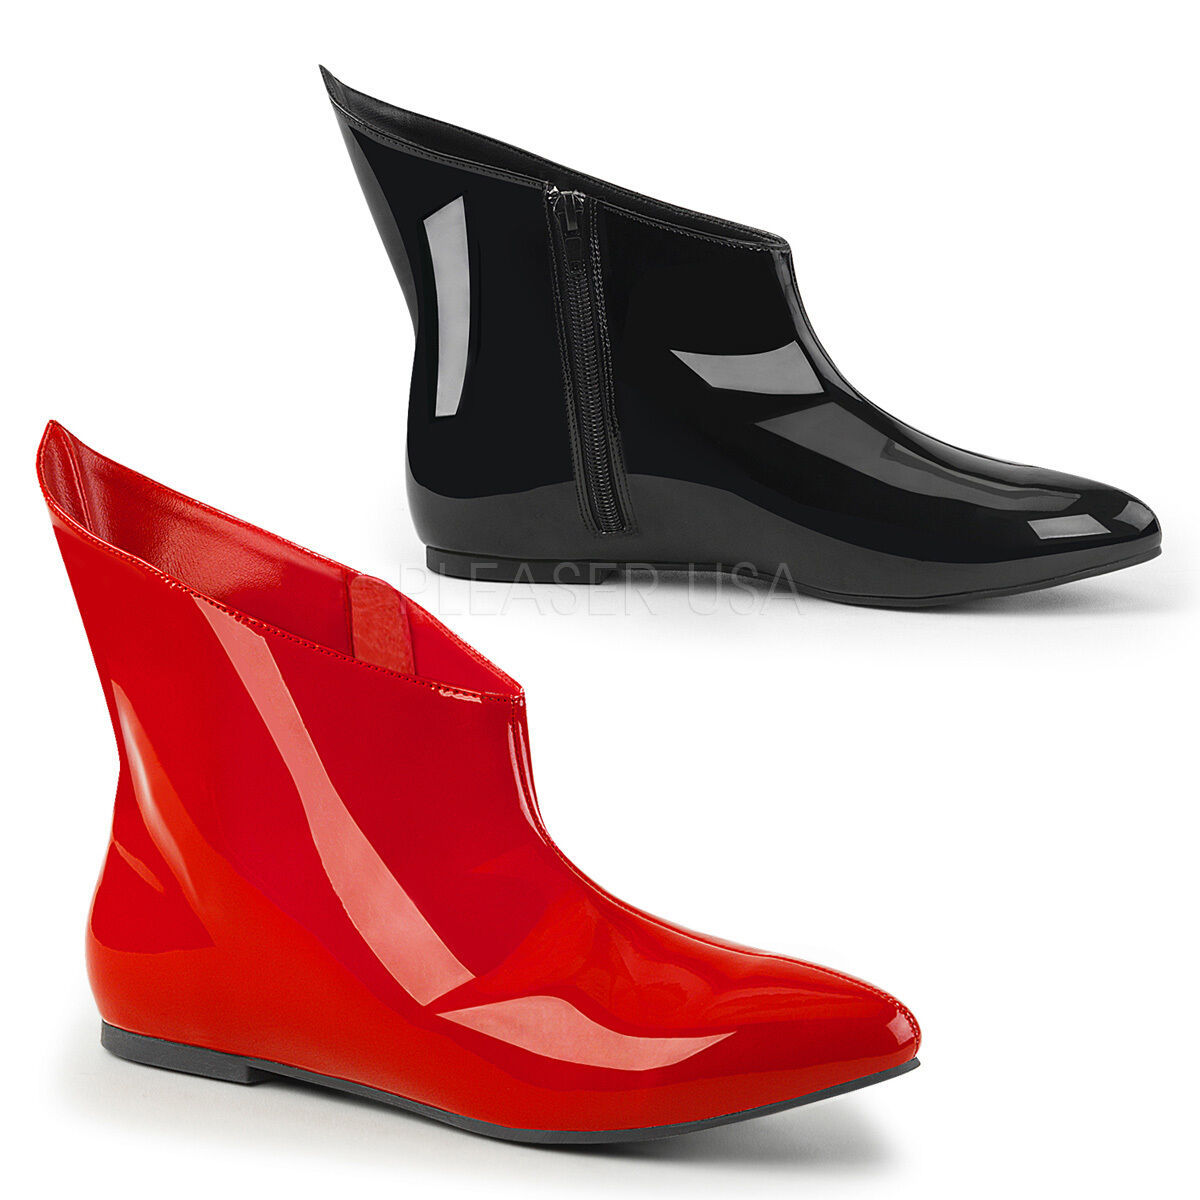 Primary image for Pointed Toe Dual Colored Flat Harley Quinn Ankle Boots Halloween Costume Shoes